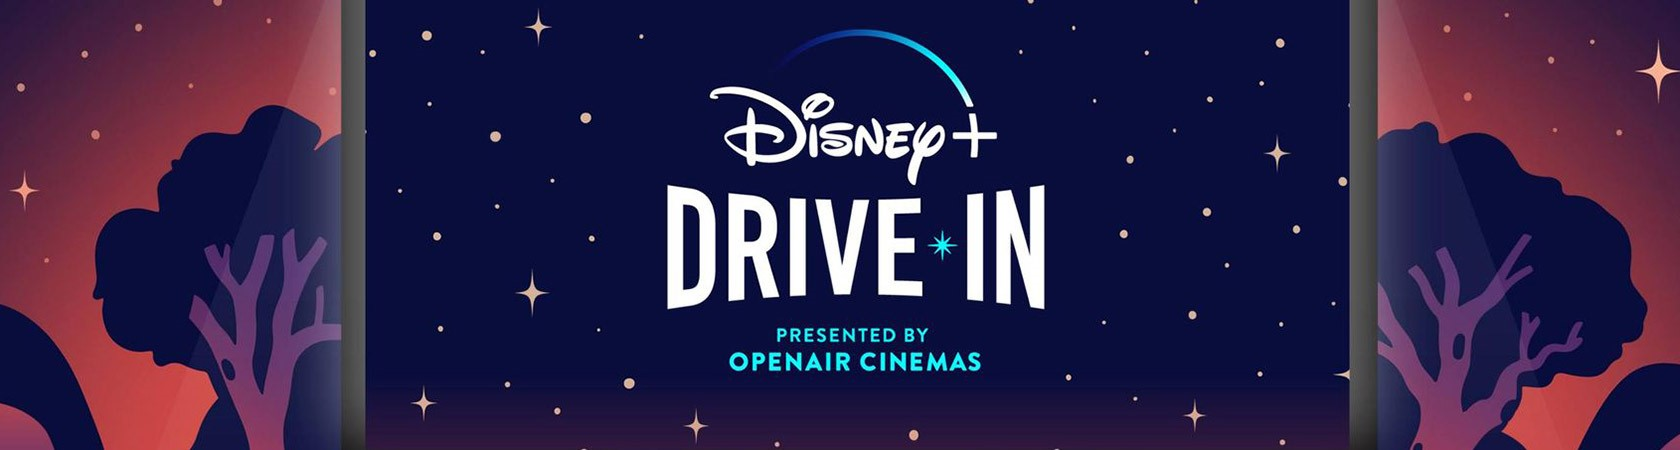 Disney+ Drive In presented by Open Air Cinemas